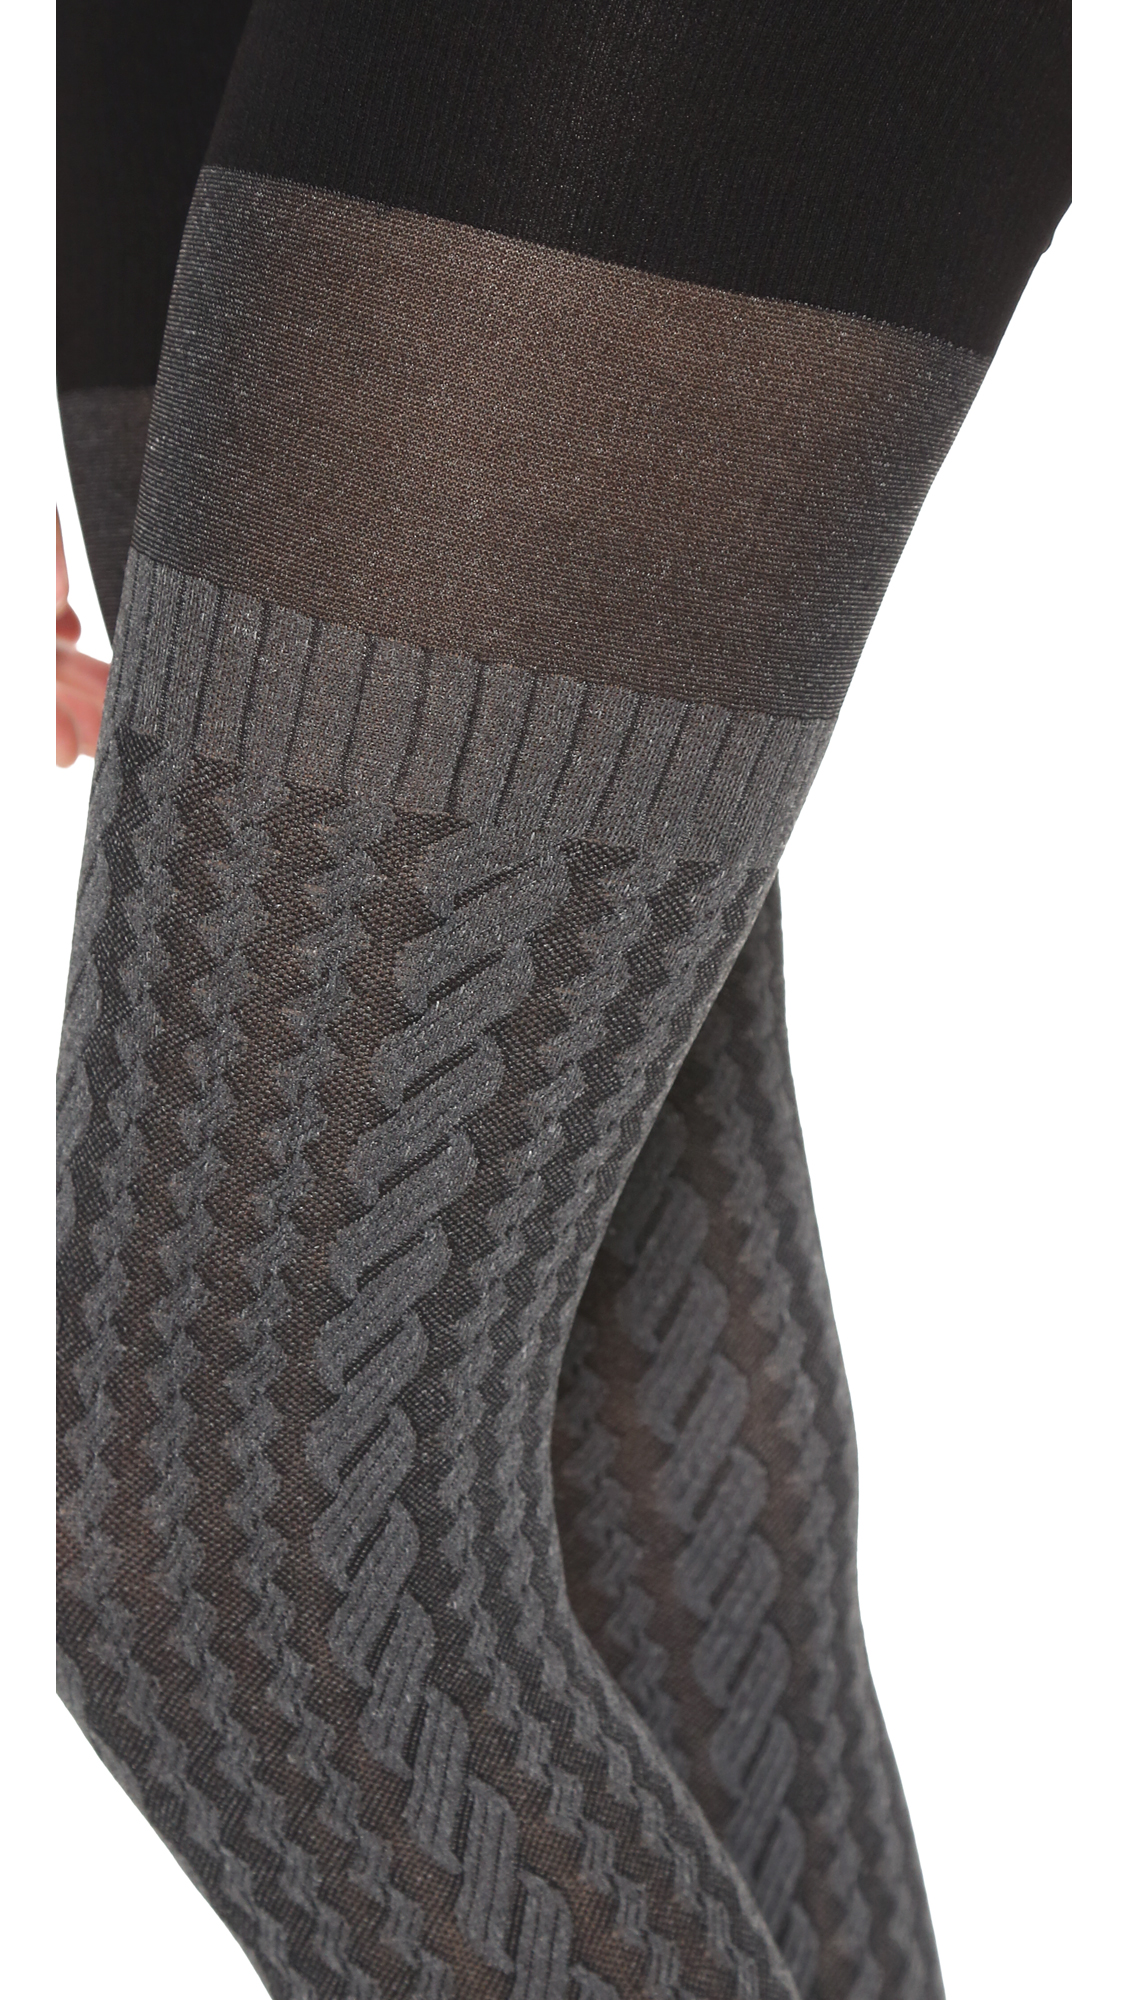 Spanx Cable Knit Tights Shopbop